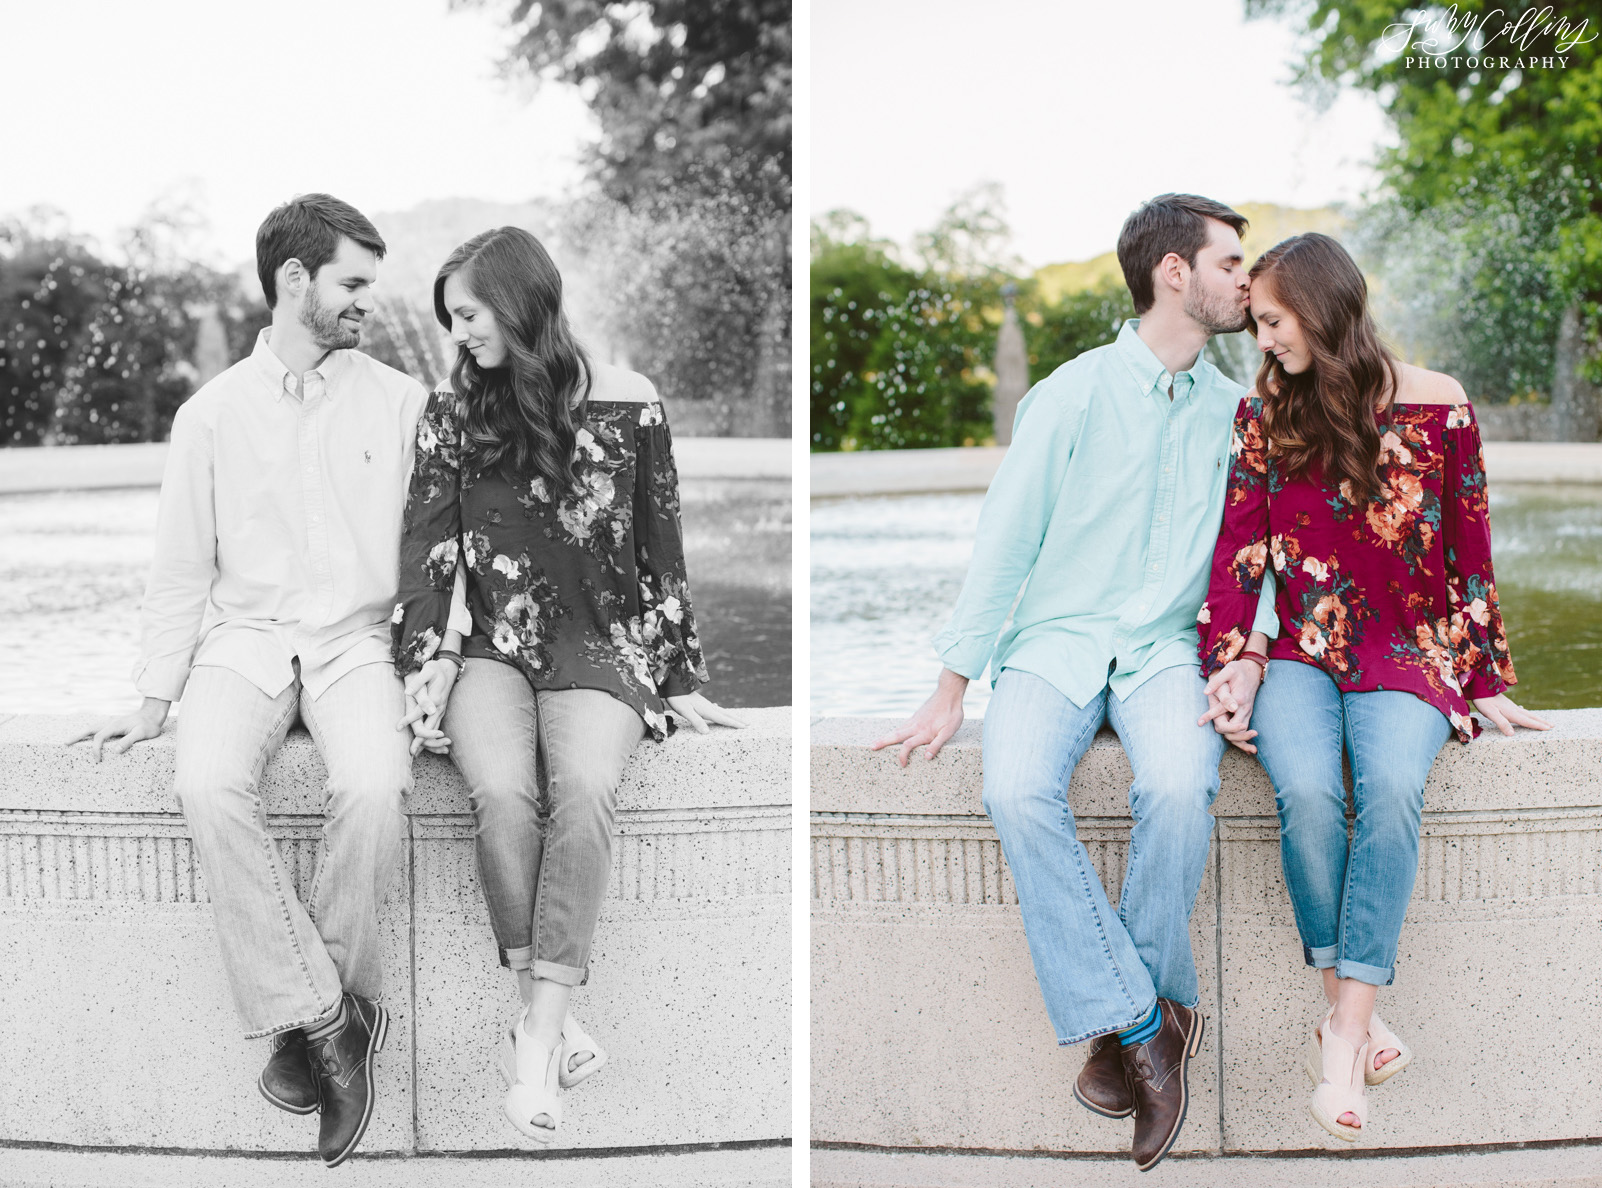 poses, couples, outdoor, Sequoyah hills, Knoxville, Tennessee, engagement, sunset, evening, love, vibrant, colorful, bright, creative, romantic, natural, light and airy, natural light, passion, inspiration, intimate, outfits, fountain, black and white